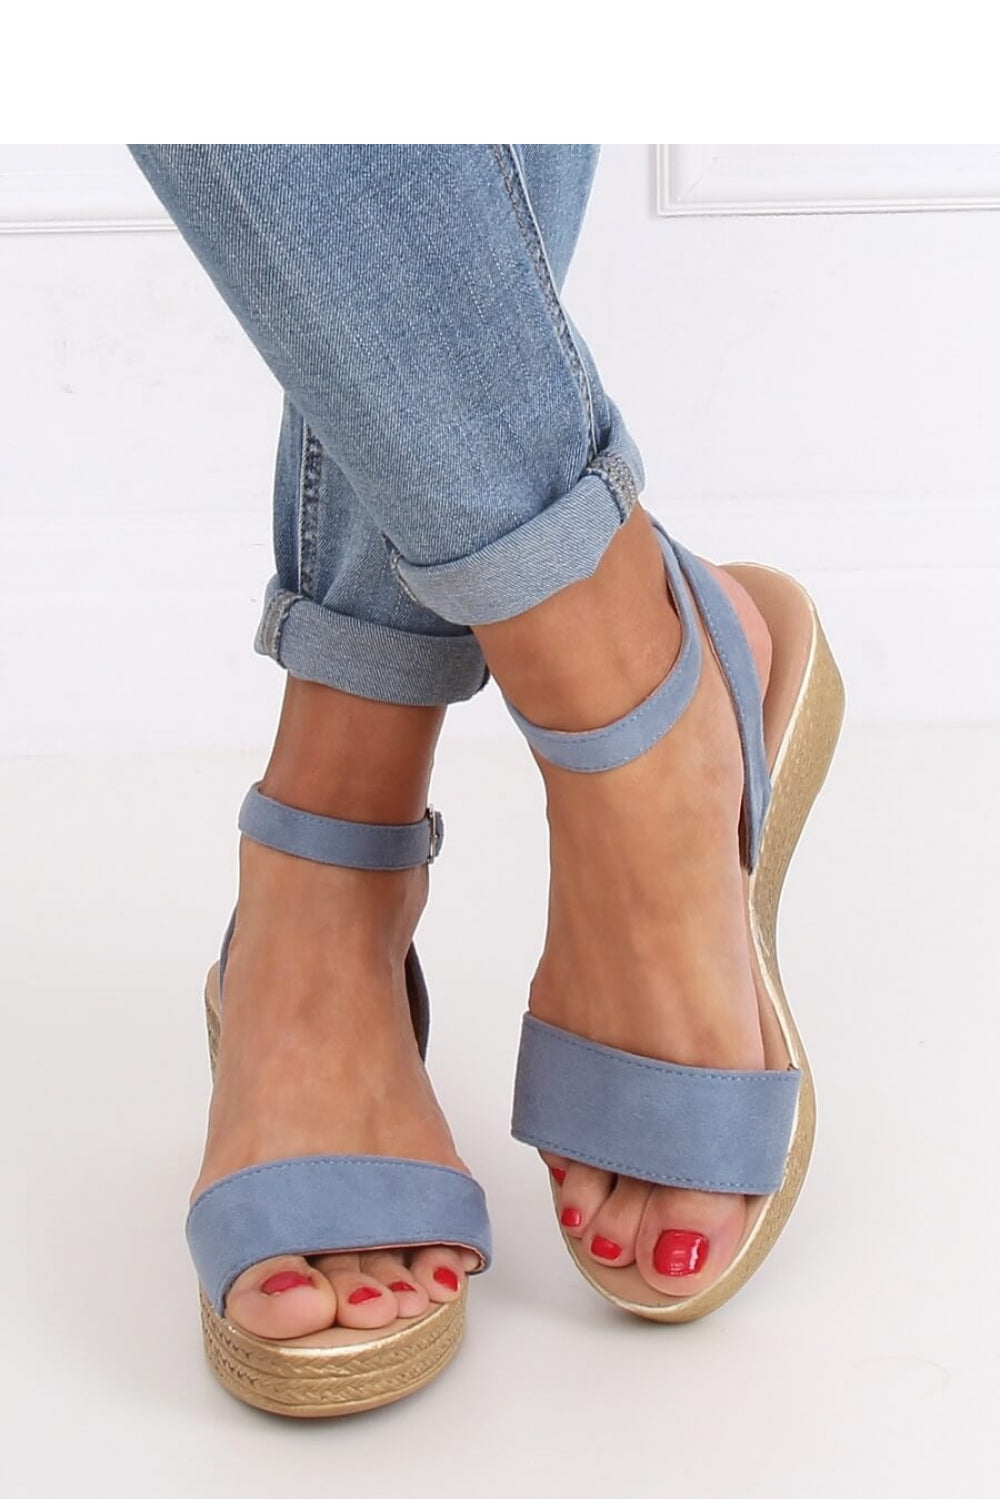 Blue Wedge Sandals 144602